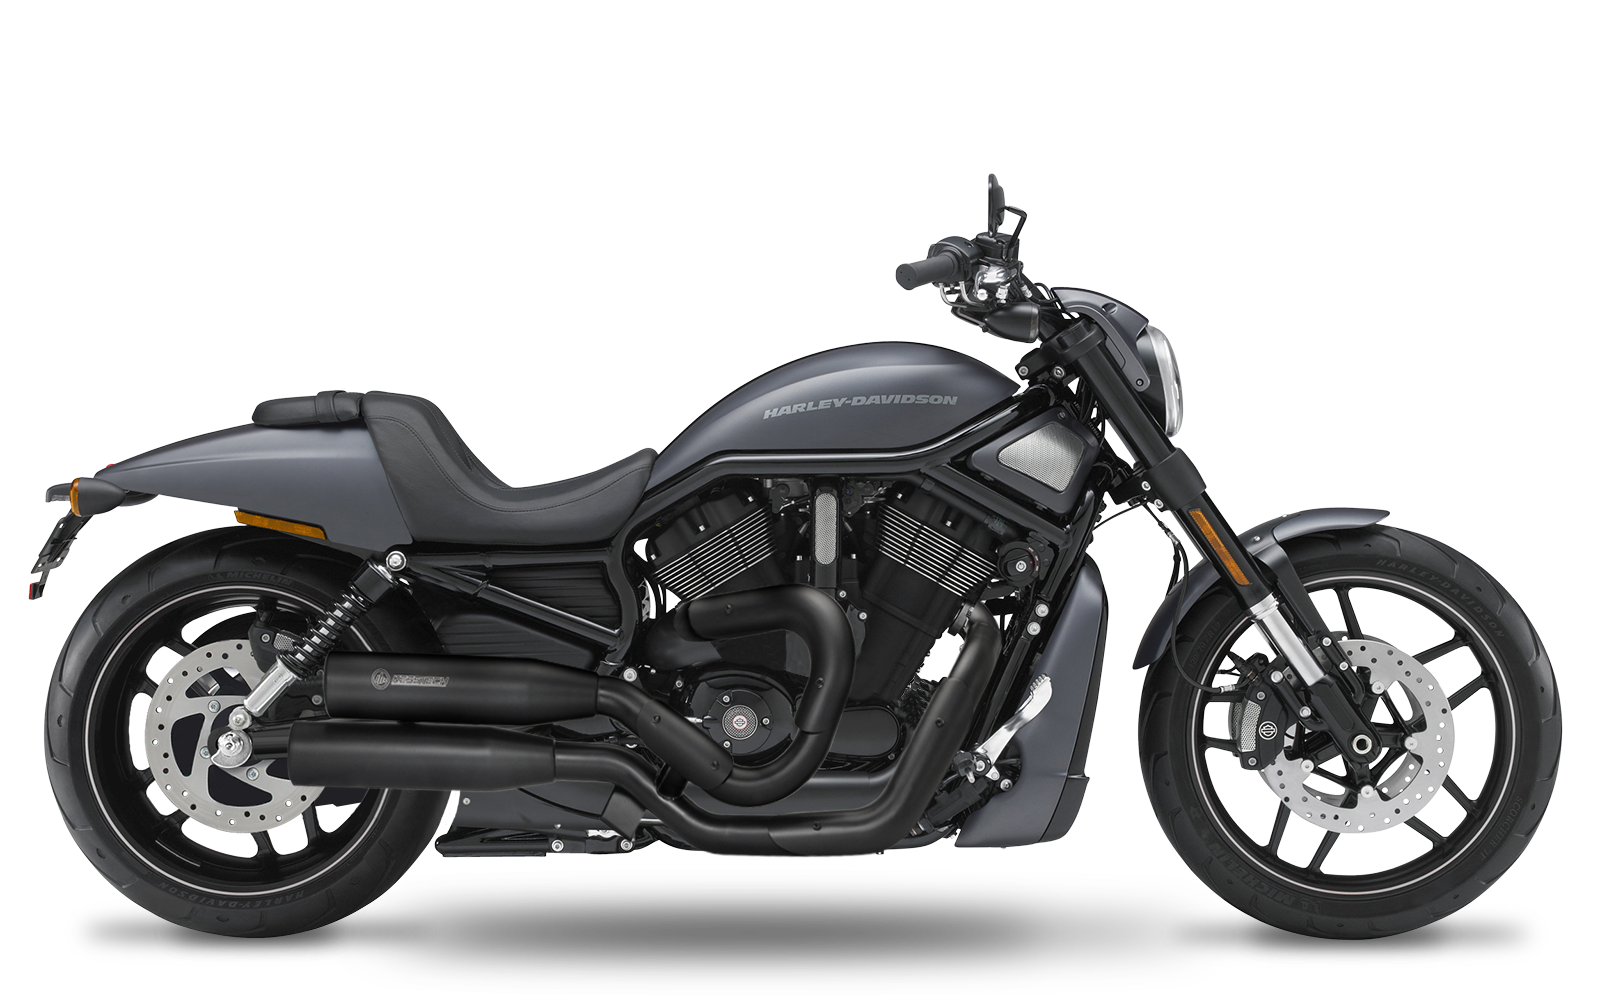 VRSC - Night Rod Special - 1250 - 2012-2017 - Complete systems non adjustable